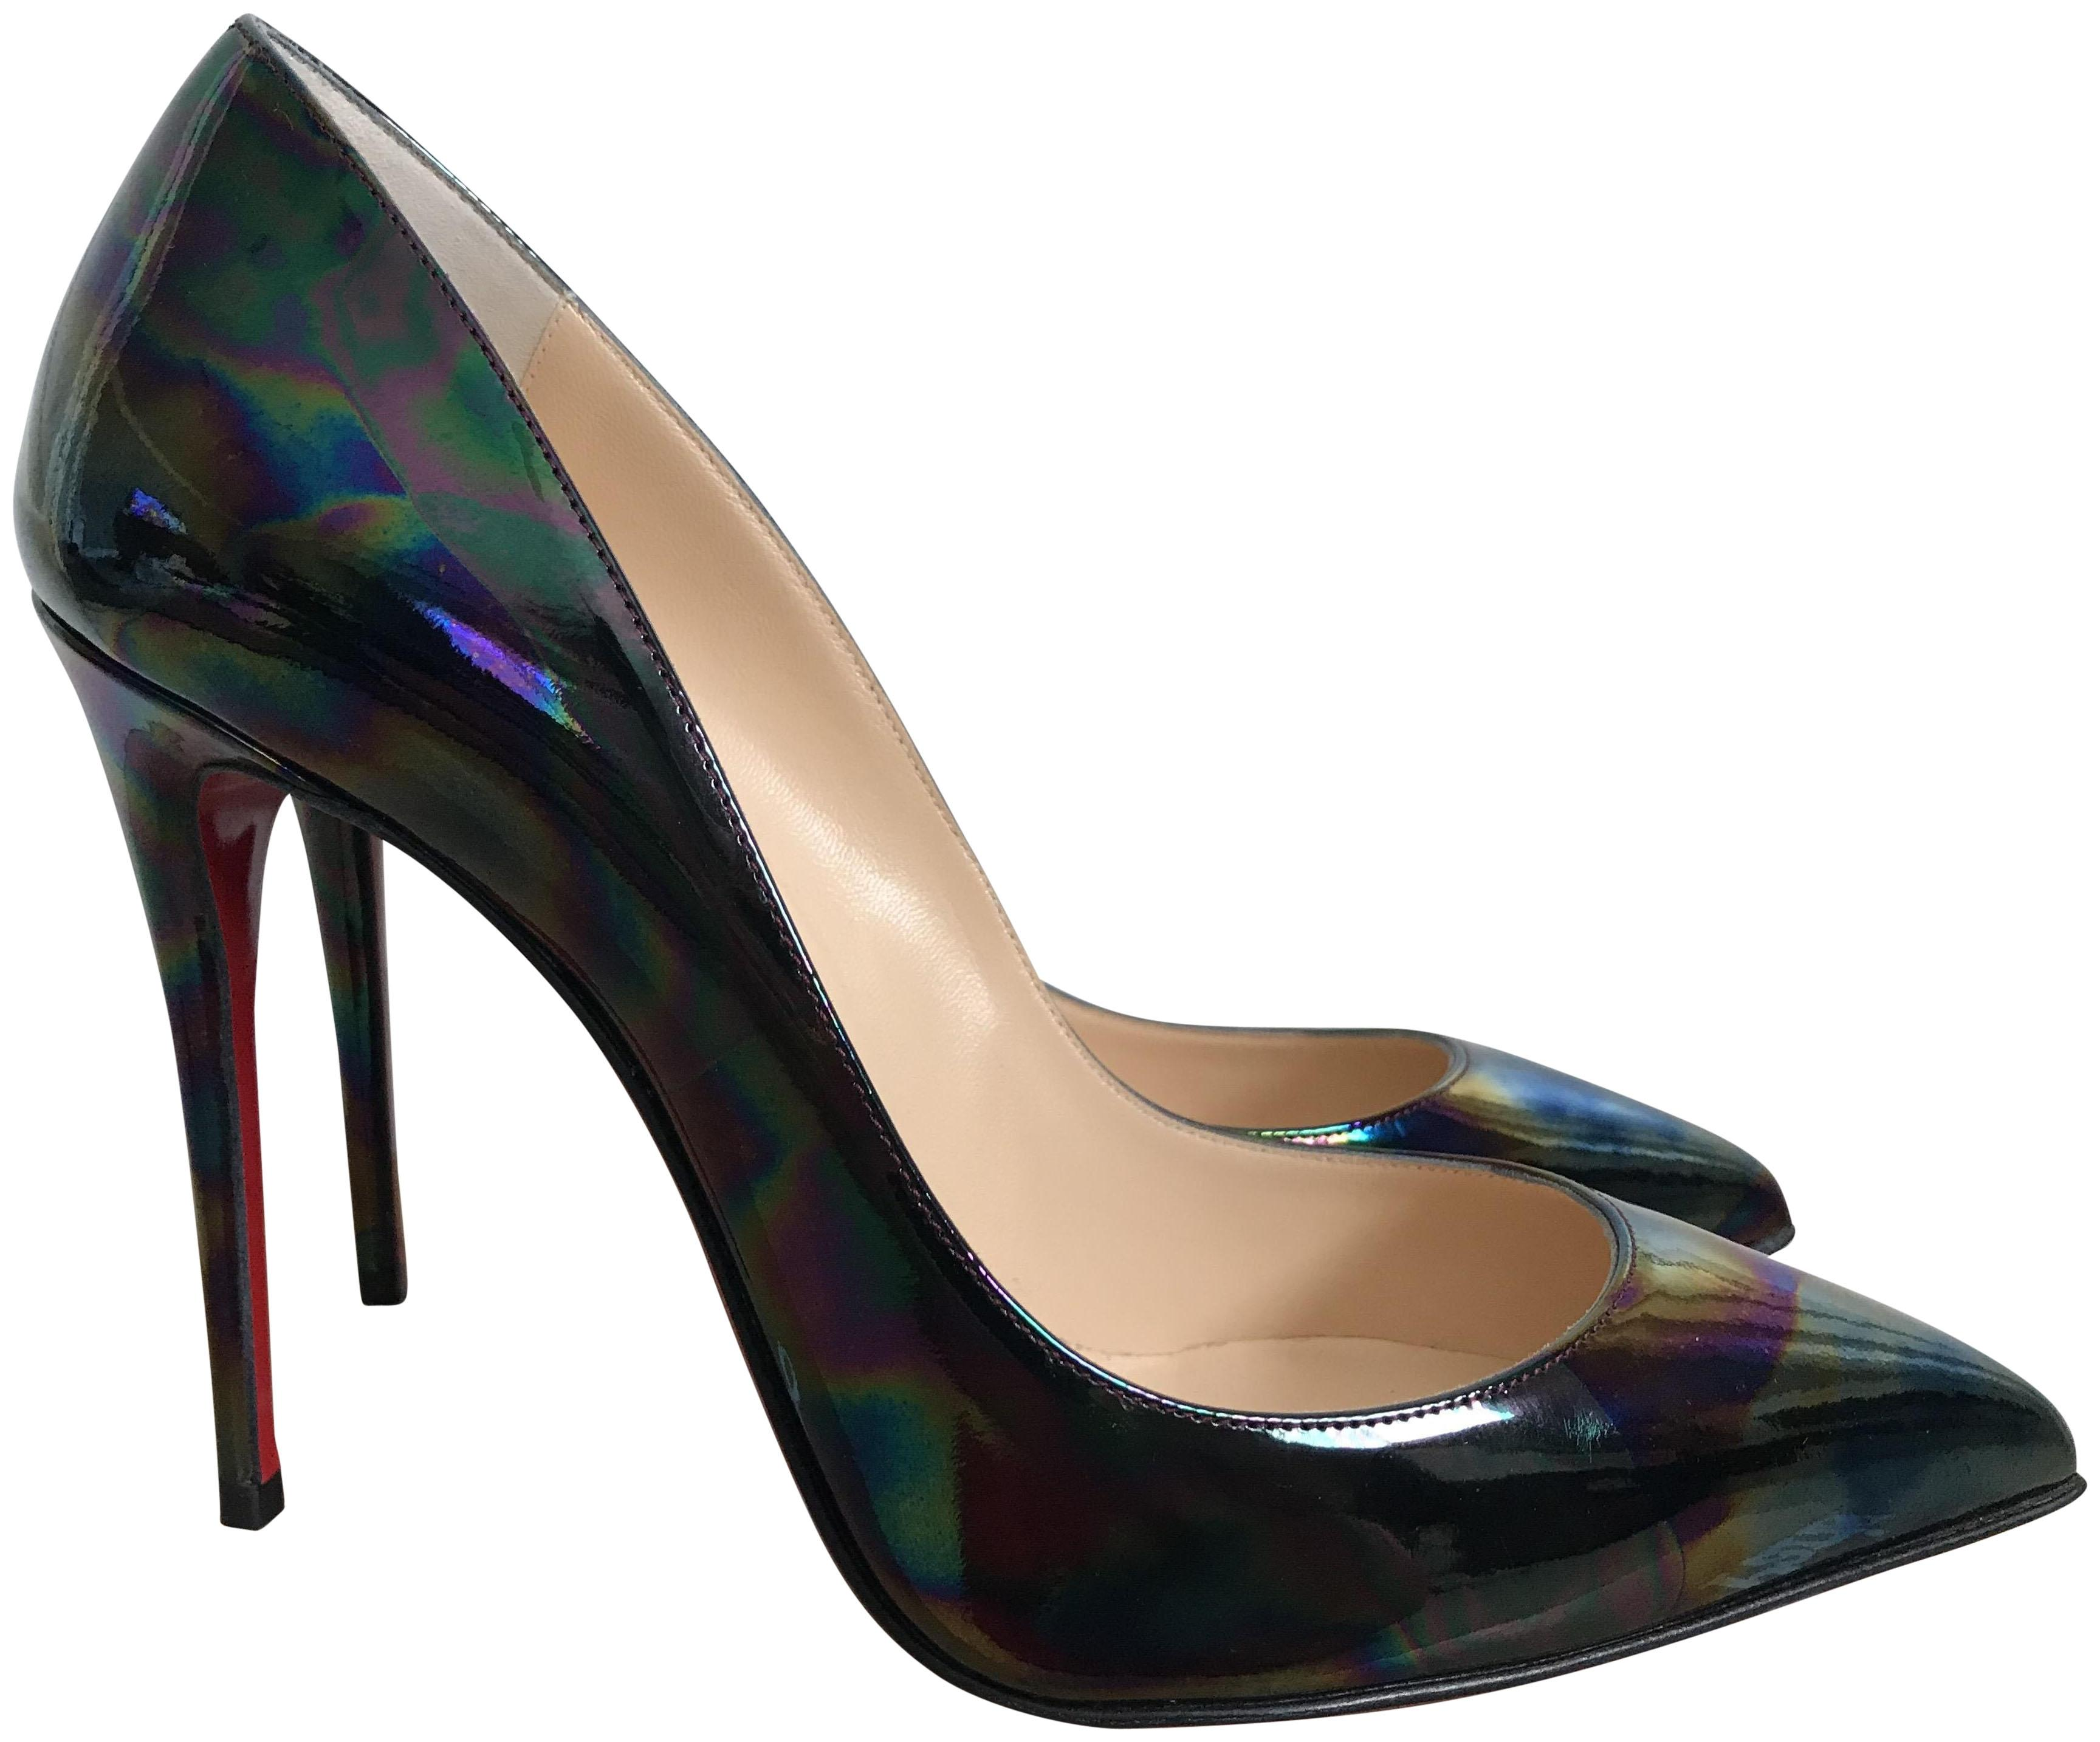 935b7f5b910 Christian Louboutin Black Pigalle Follies Oil Oil Oil Spill Pointed ...